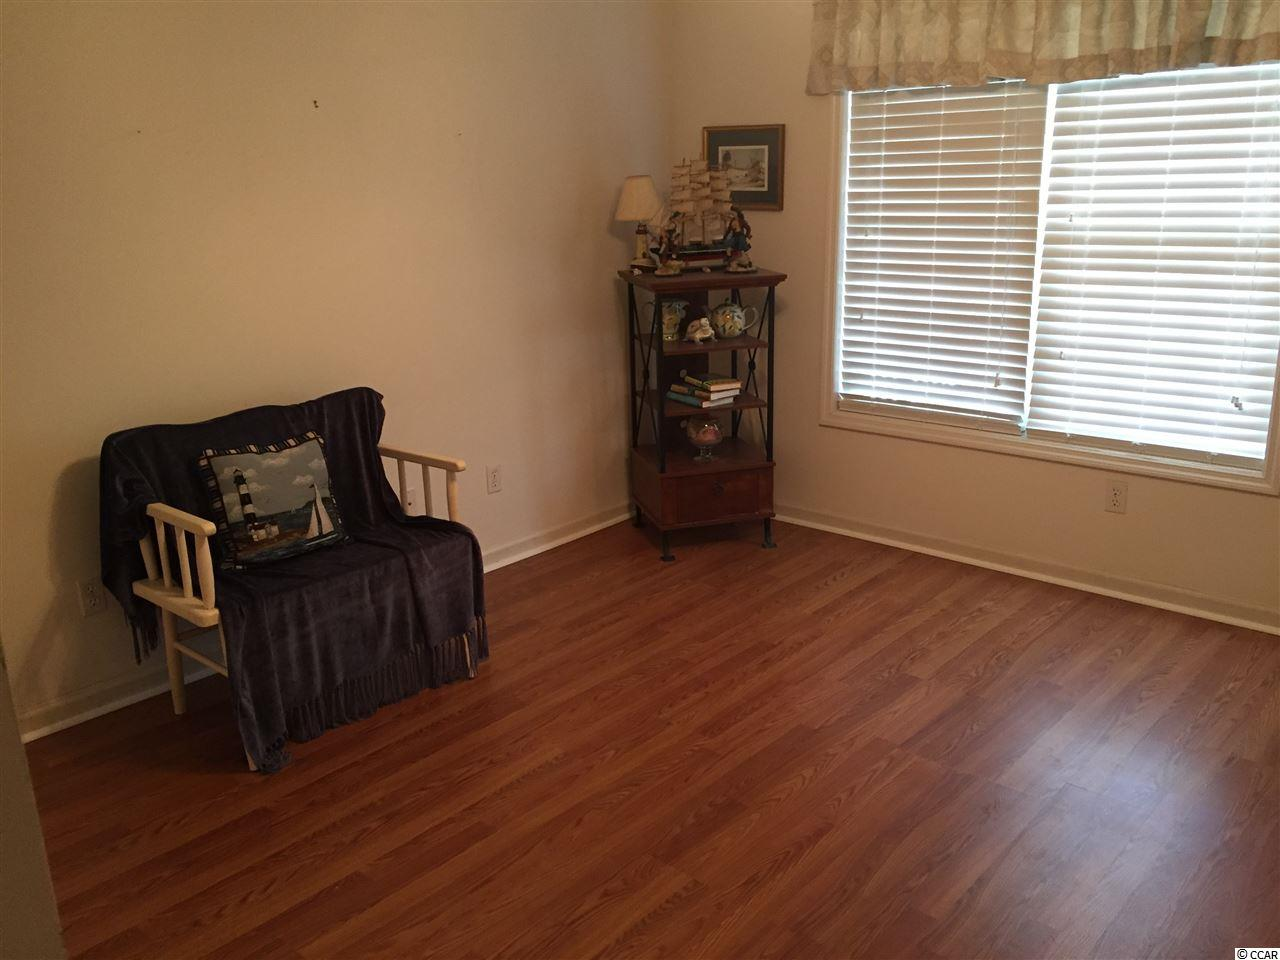 3 bedroom house at 136 Seabreeze Dr